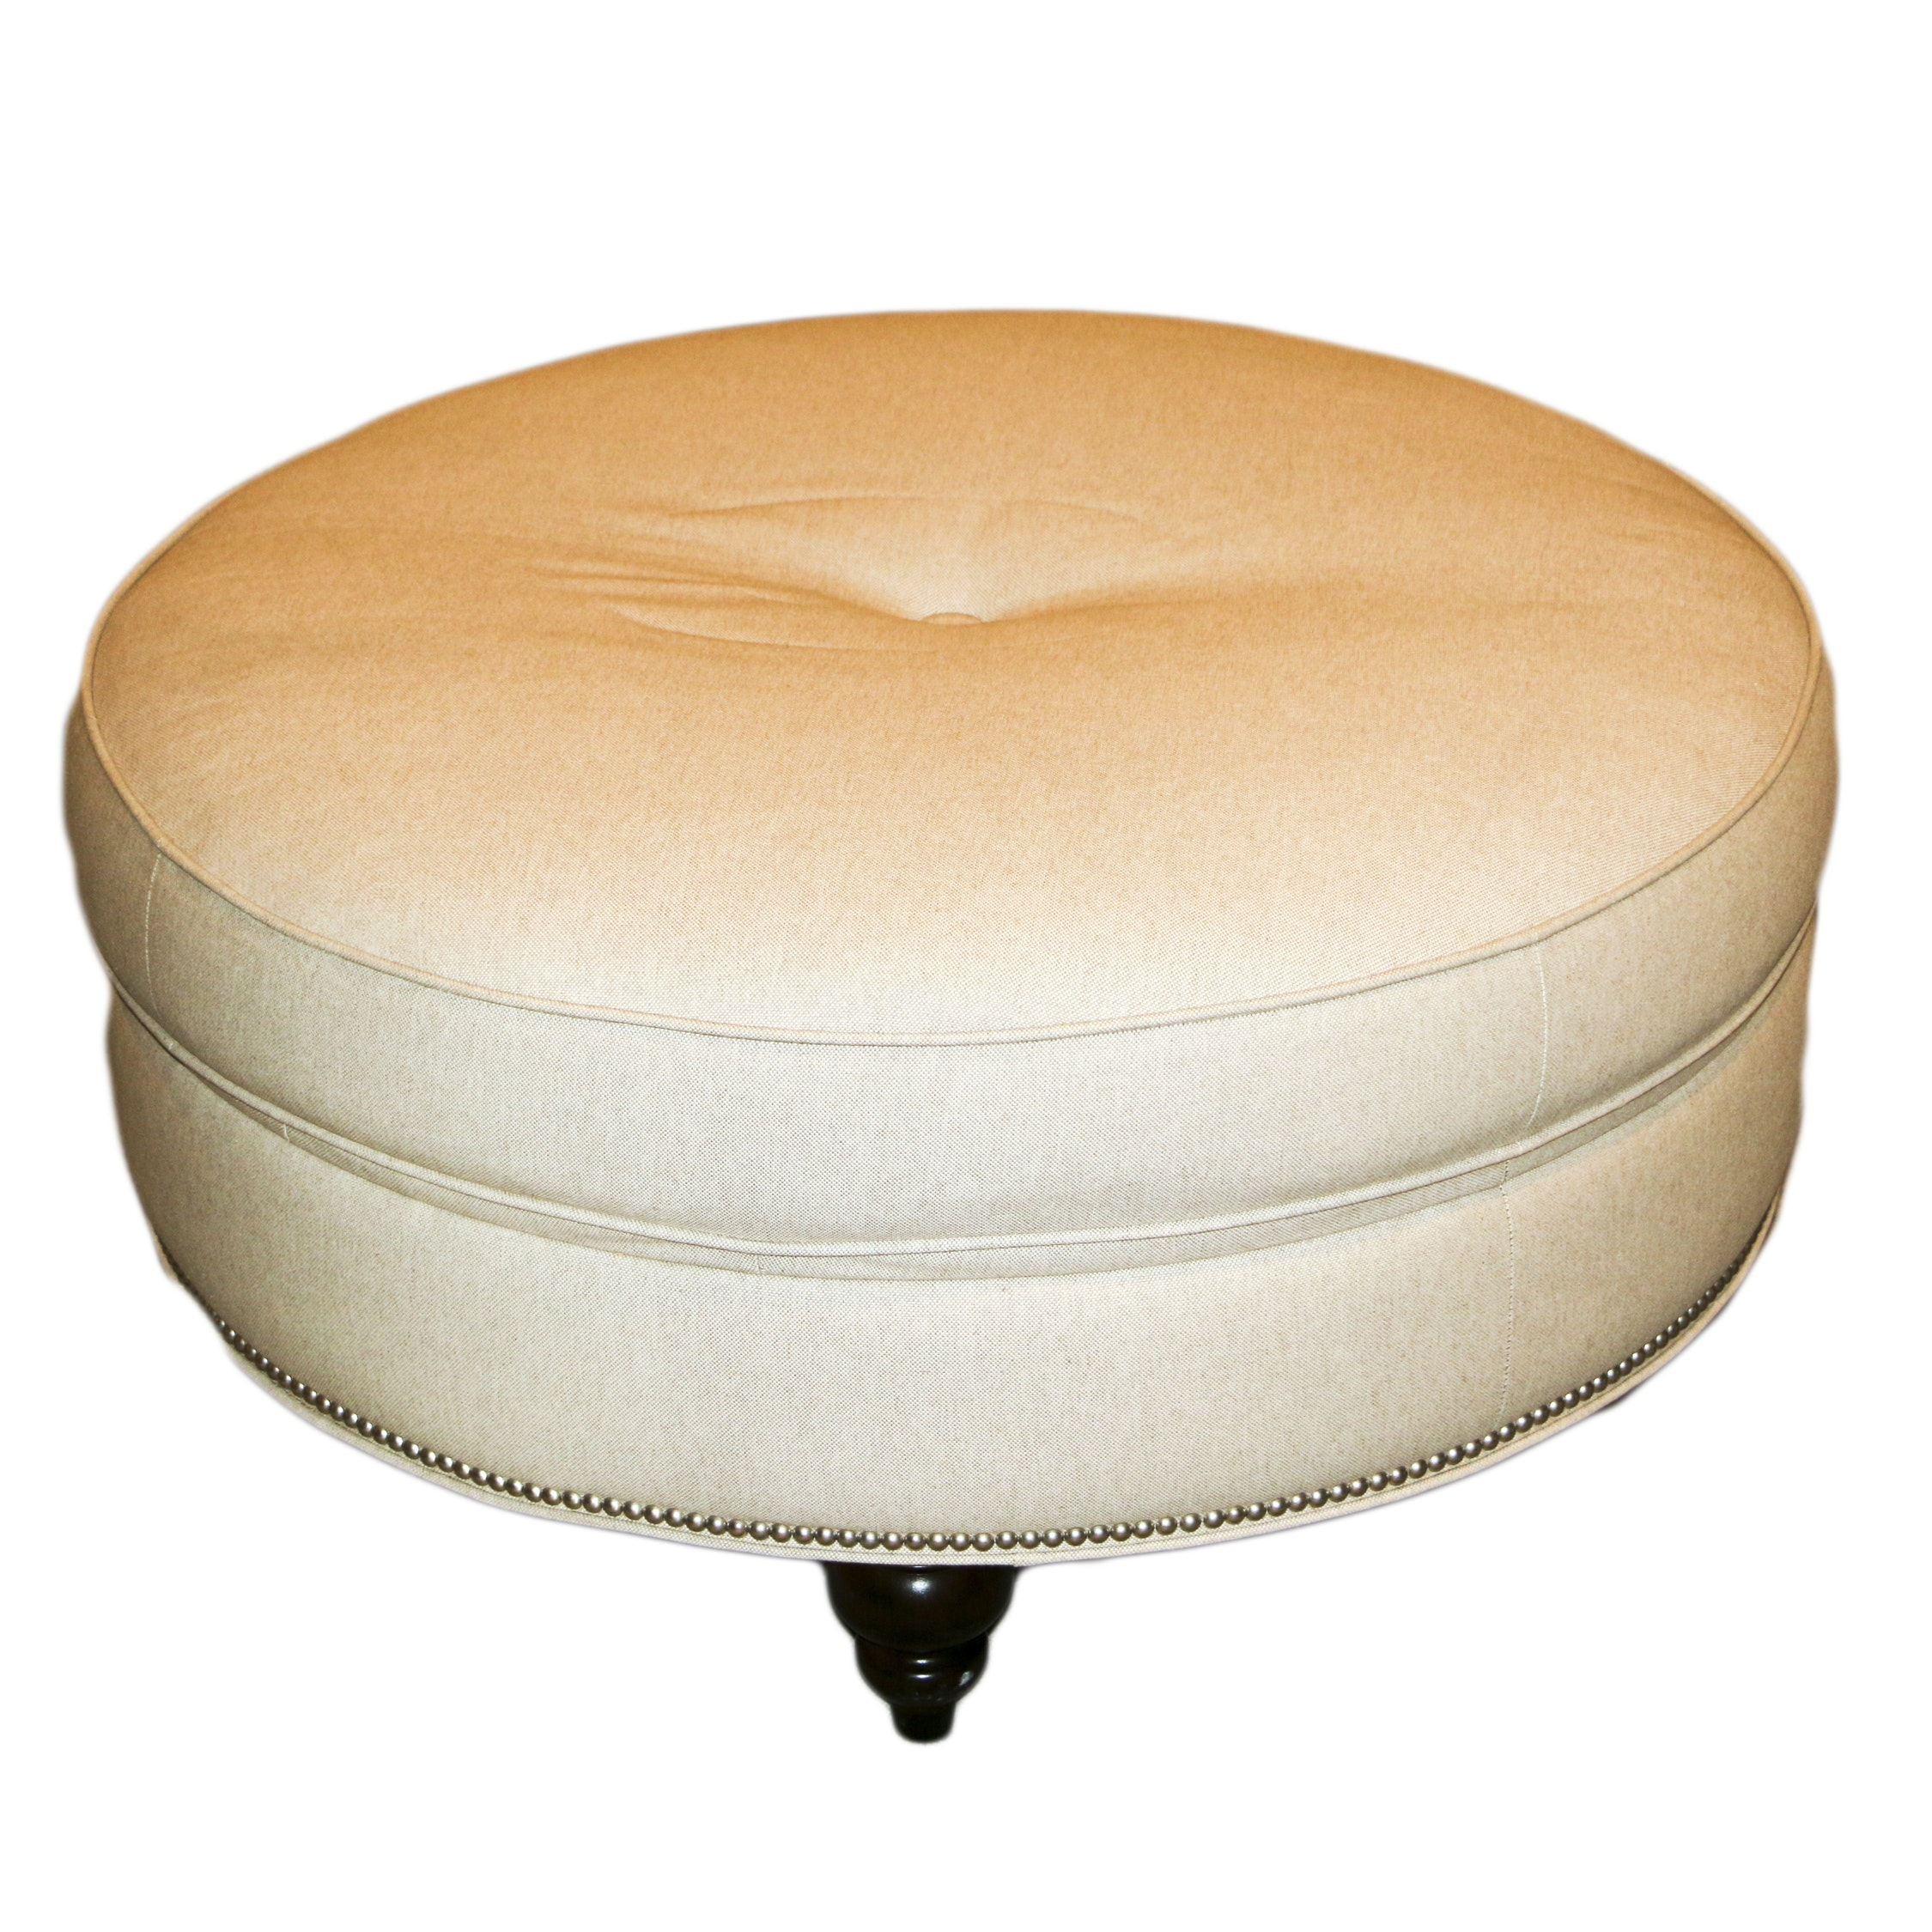 Contemporary Upholstered with Nailhead Trim Ottoman by Bassett